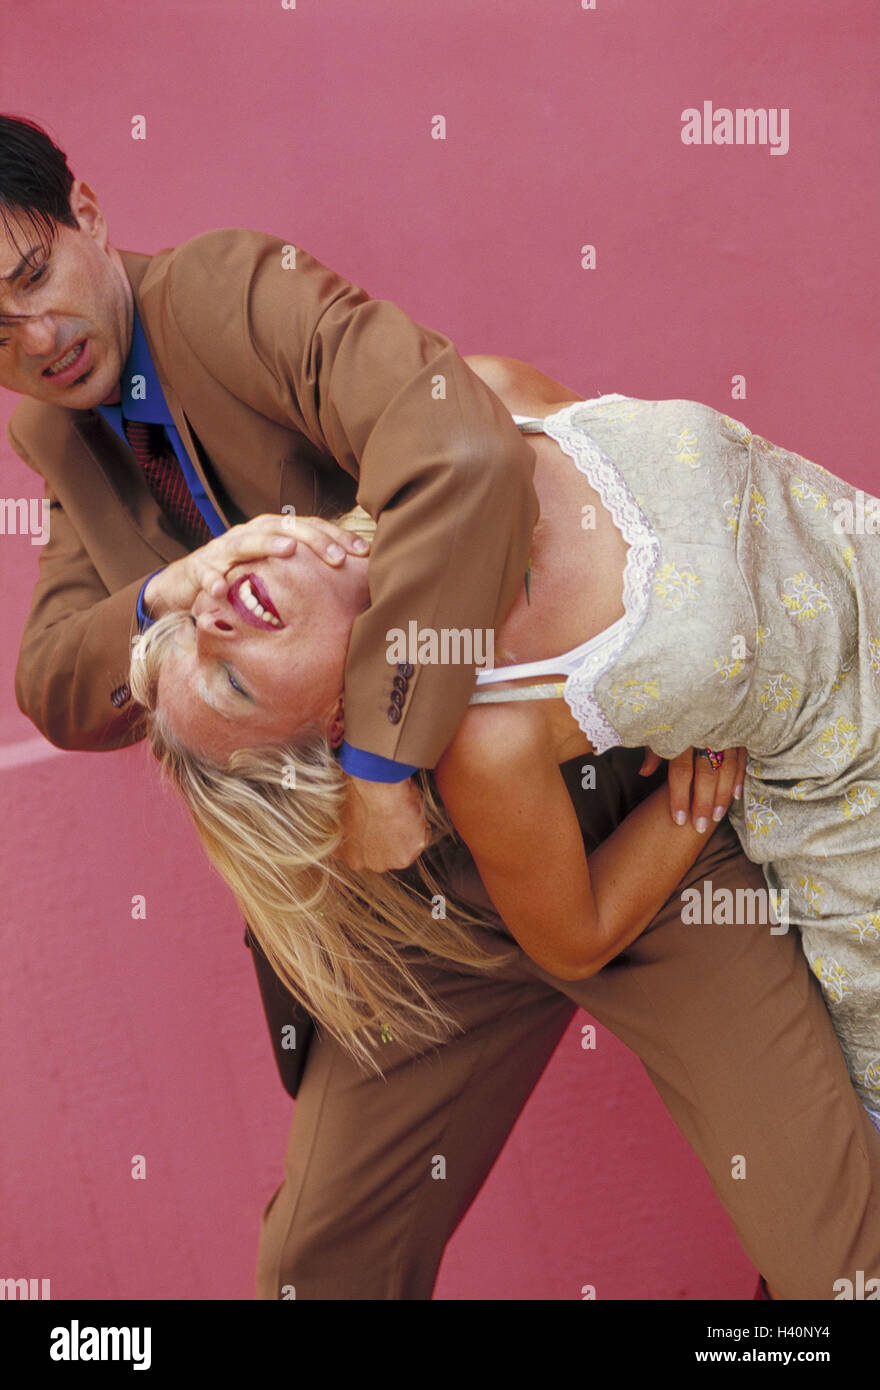 Couple, young, fight, use force adults, intentionally, power, brutality, brutally, cruelly, cruelty, violence, personal - Stock Image